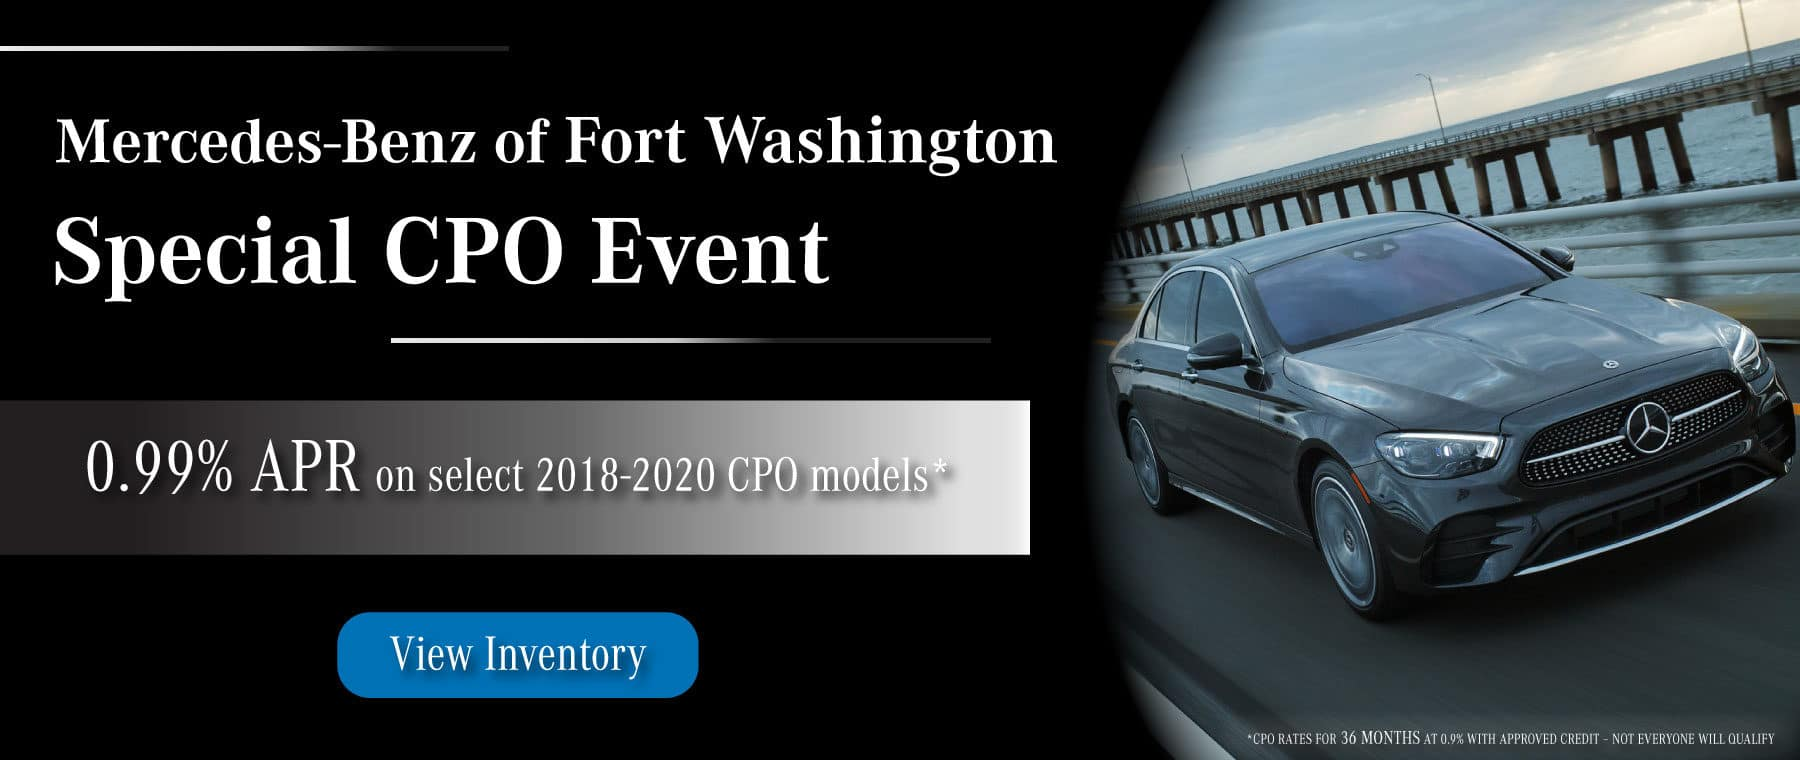 Mercedes-Benz of Fort Washington mercedes certified pre owned special event